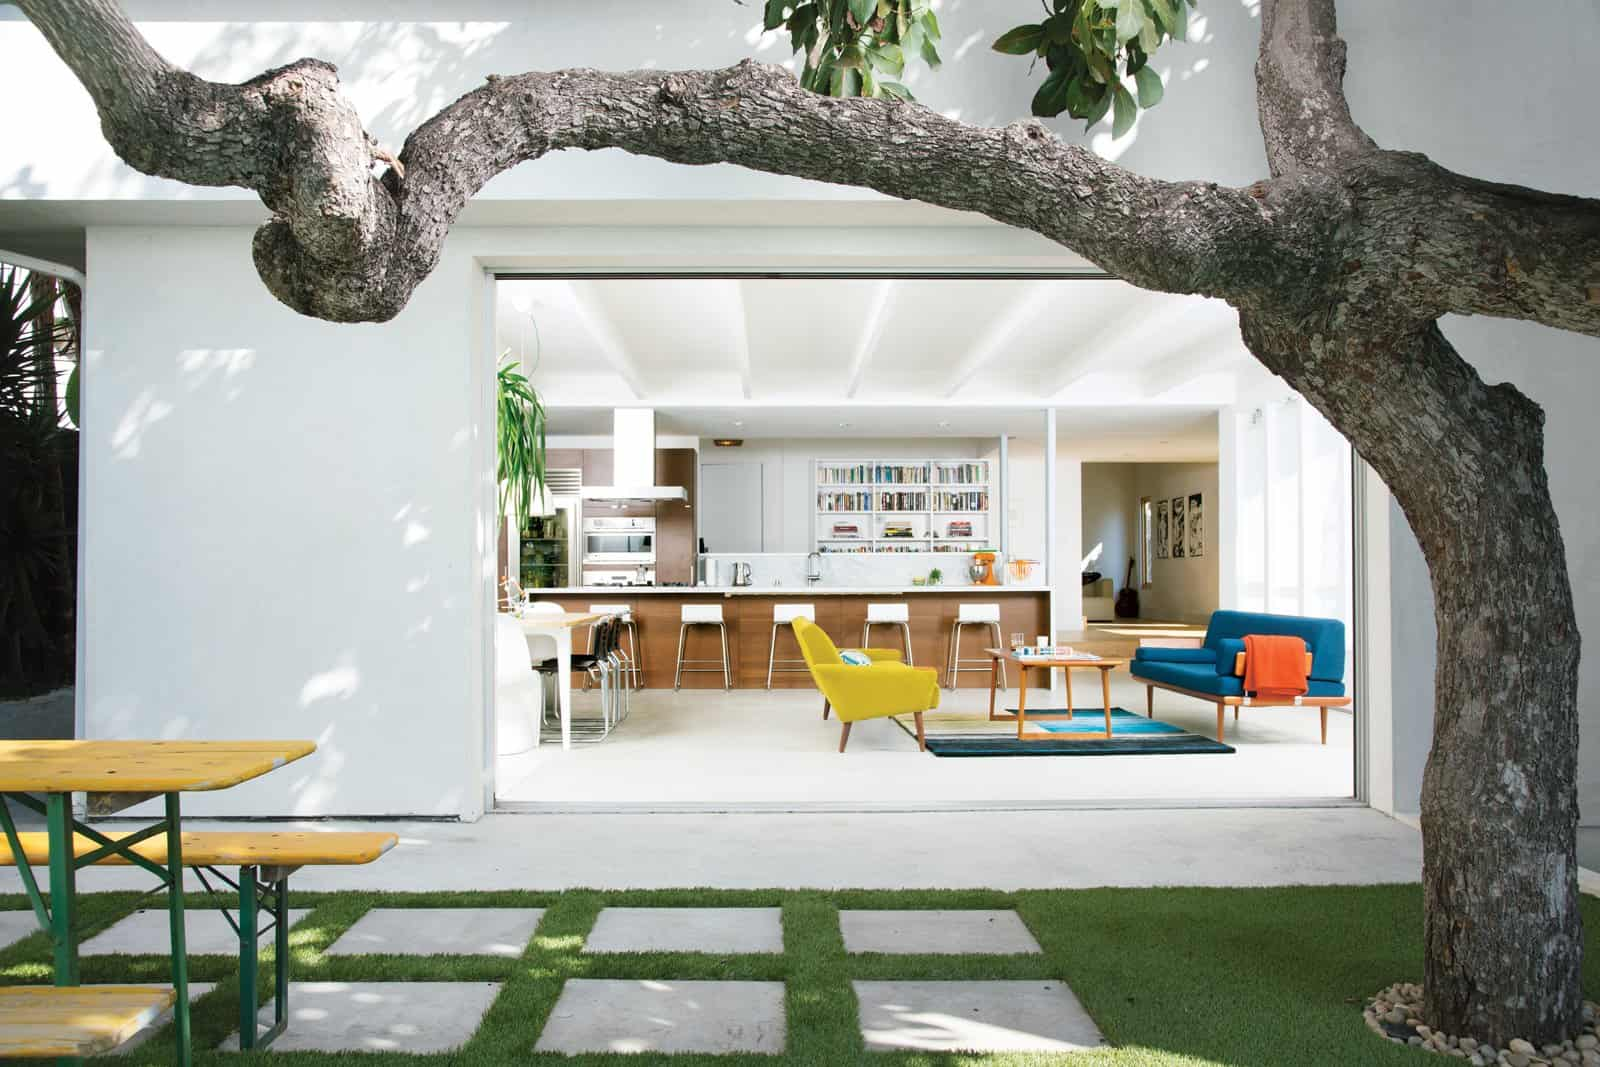 Http://www.dwell.com/renovation/article/5